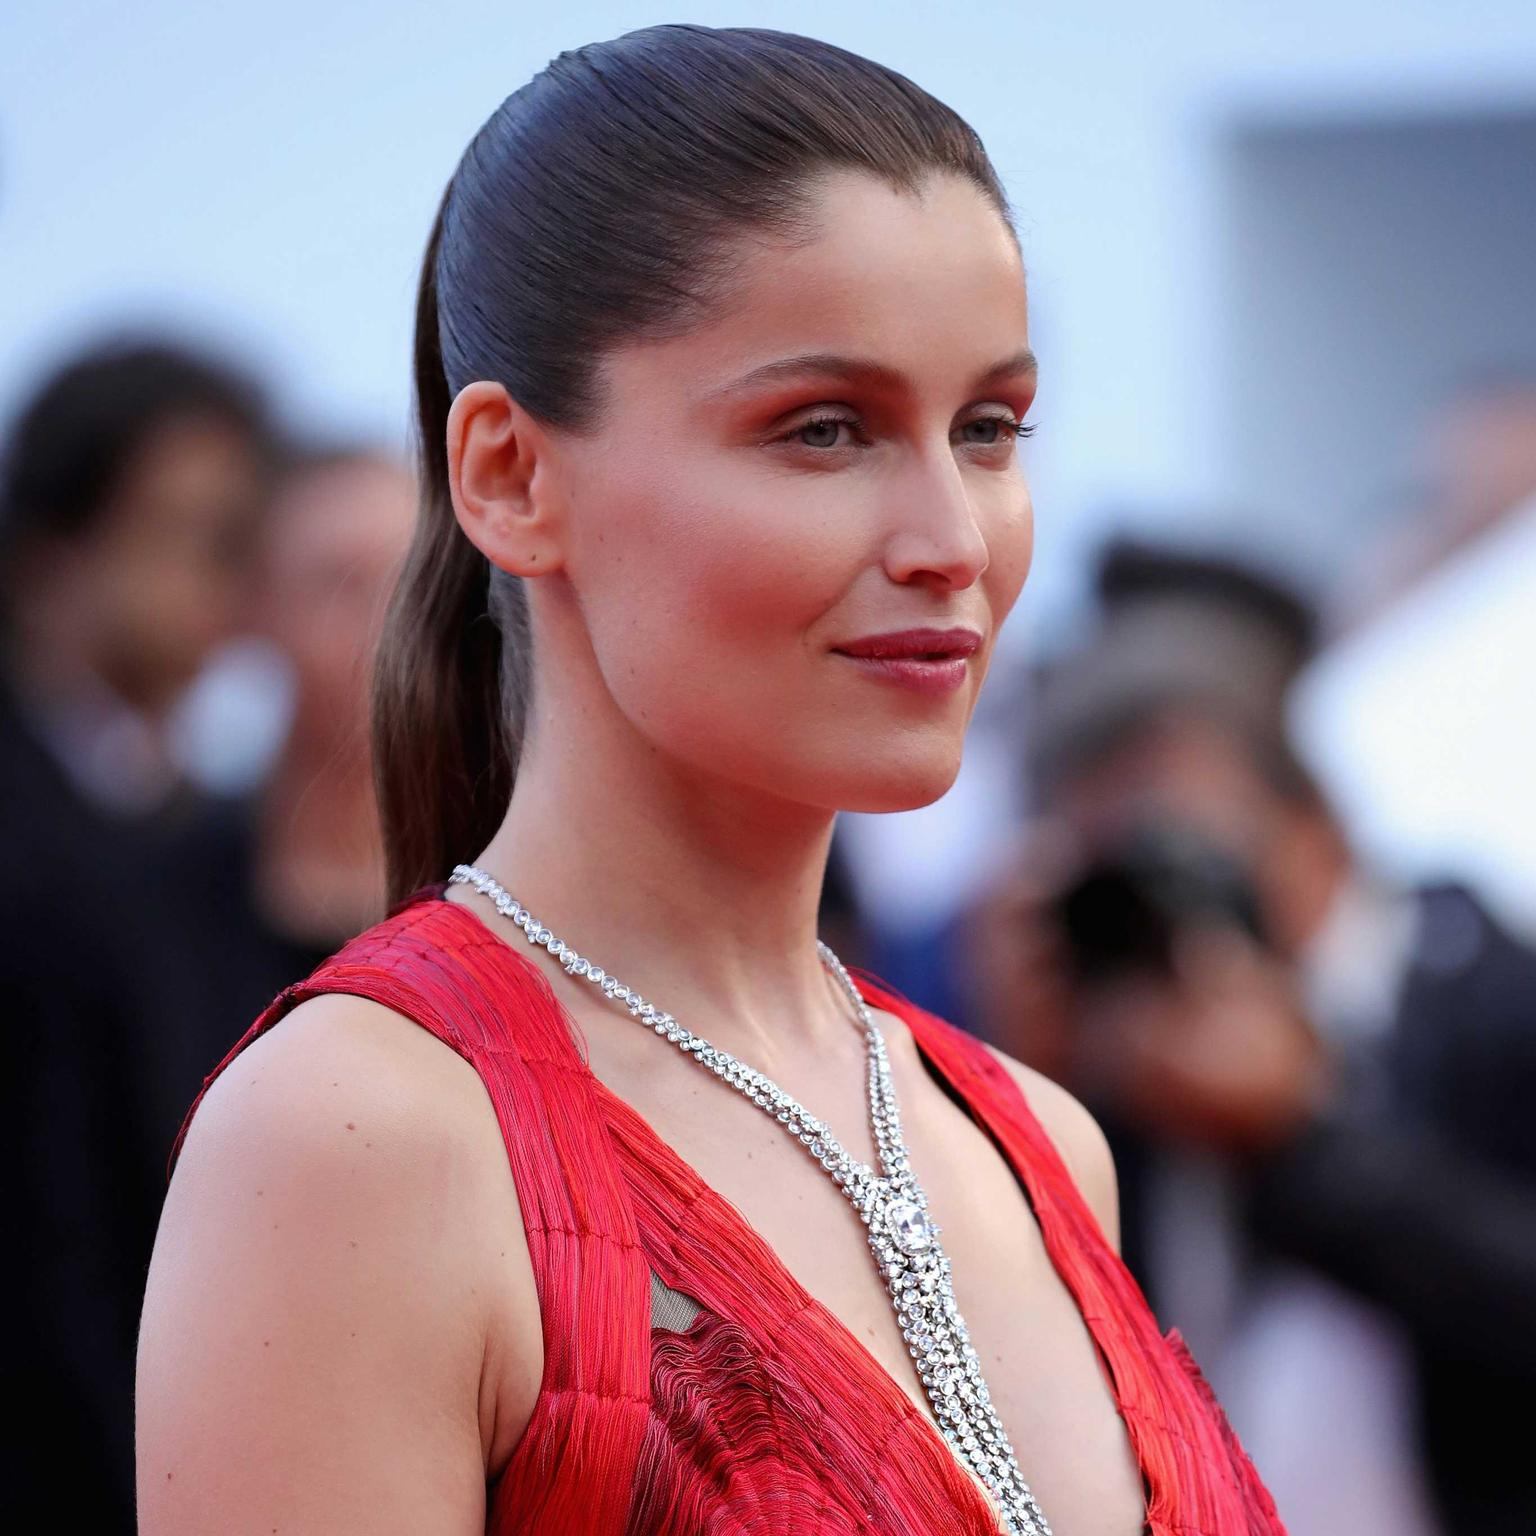 Laetitia Casta wearing Boucheron necklace at Cannes Film Festival ead28ae02544